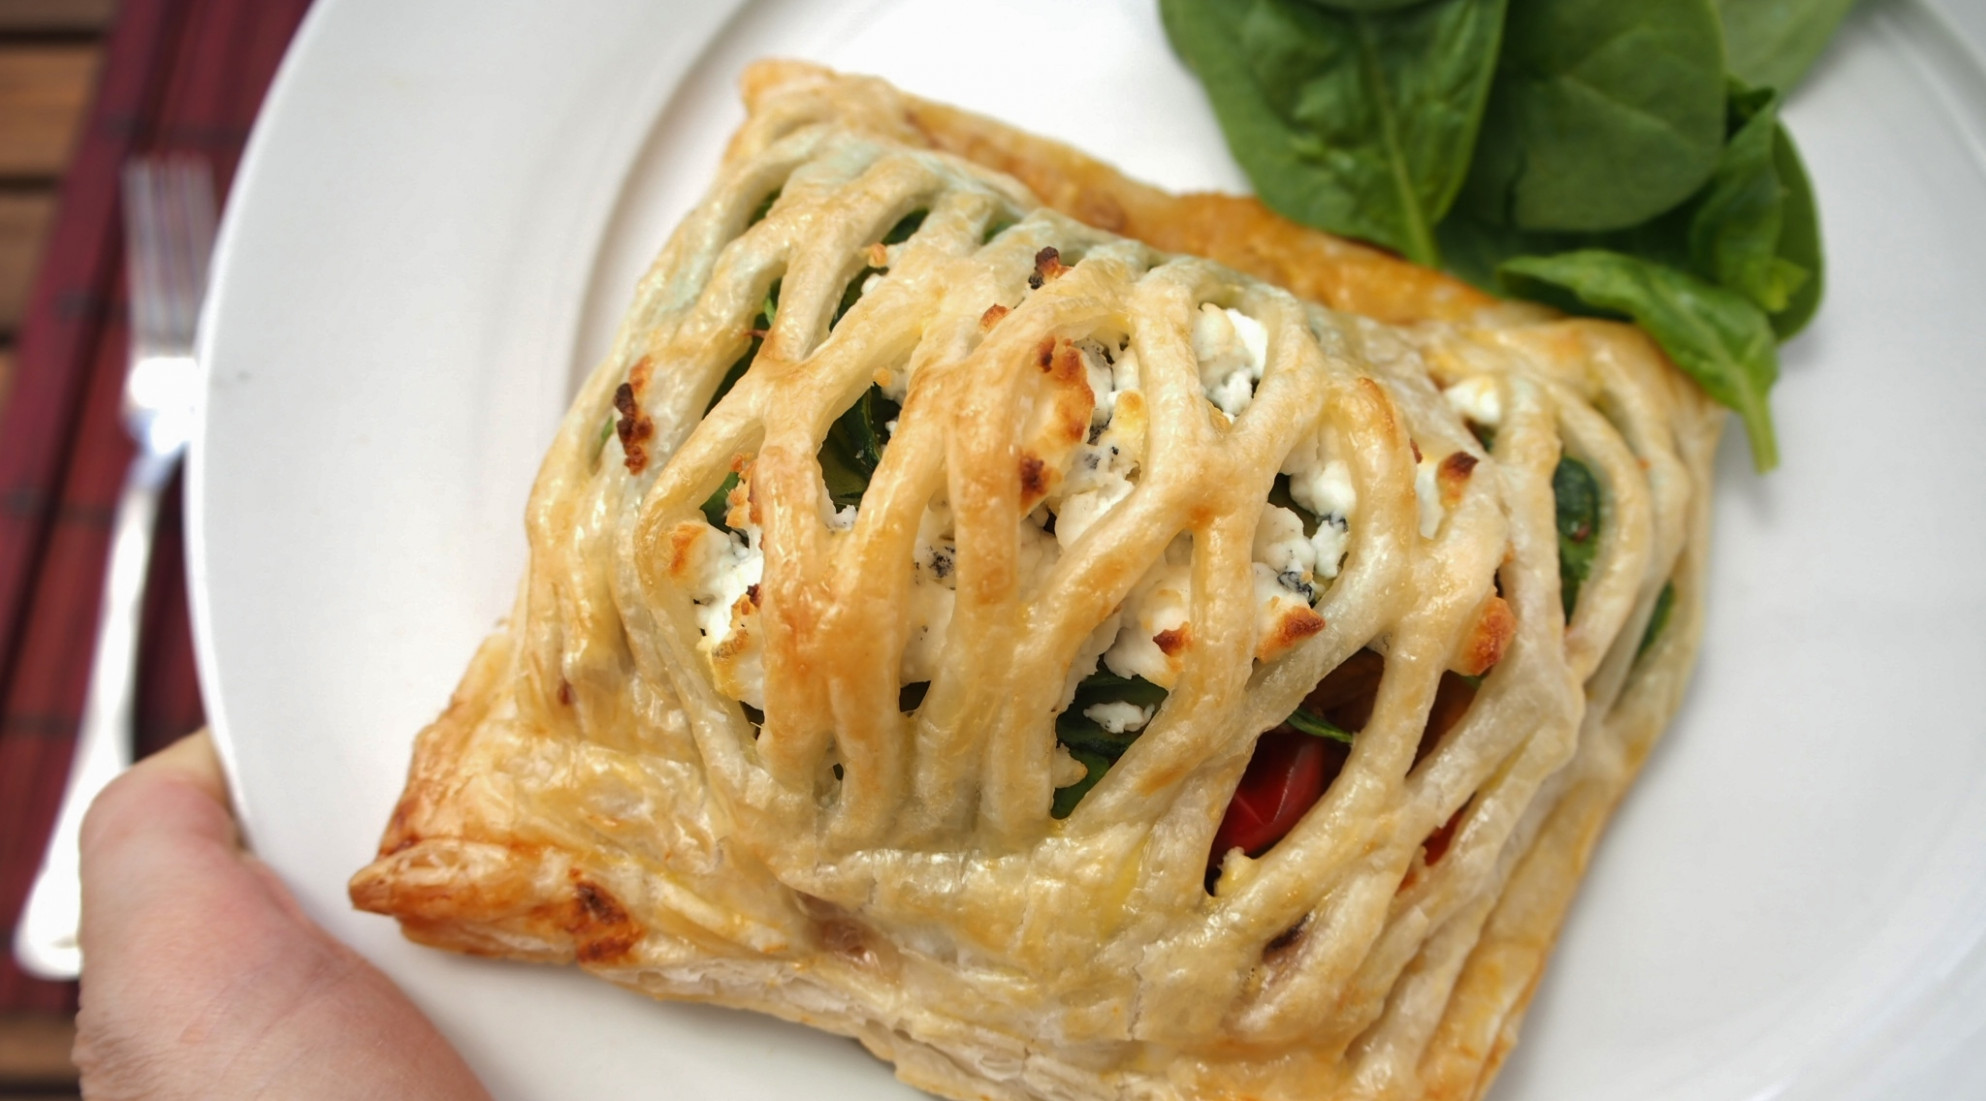 Vegetarian pastry parcels with roast vegetables and goat cheese - recipes using filo pastry vegetarian